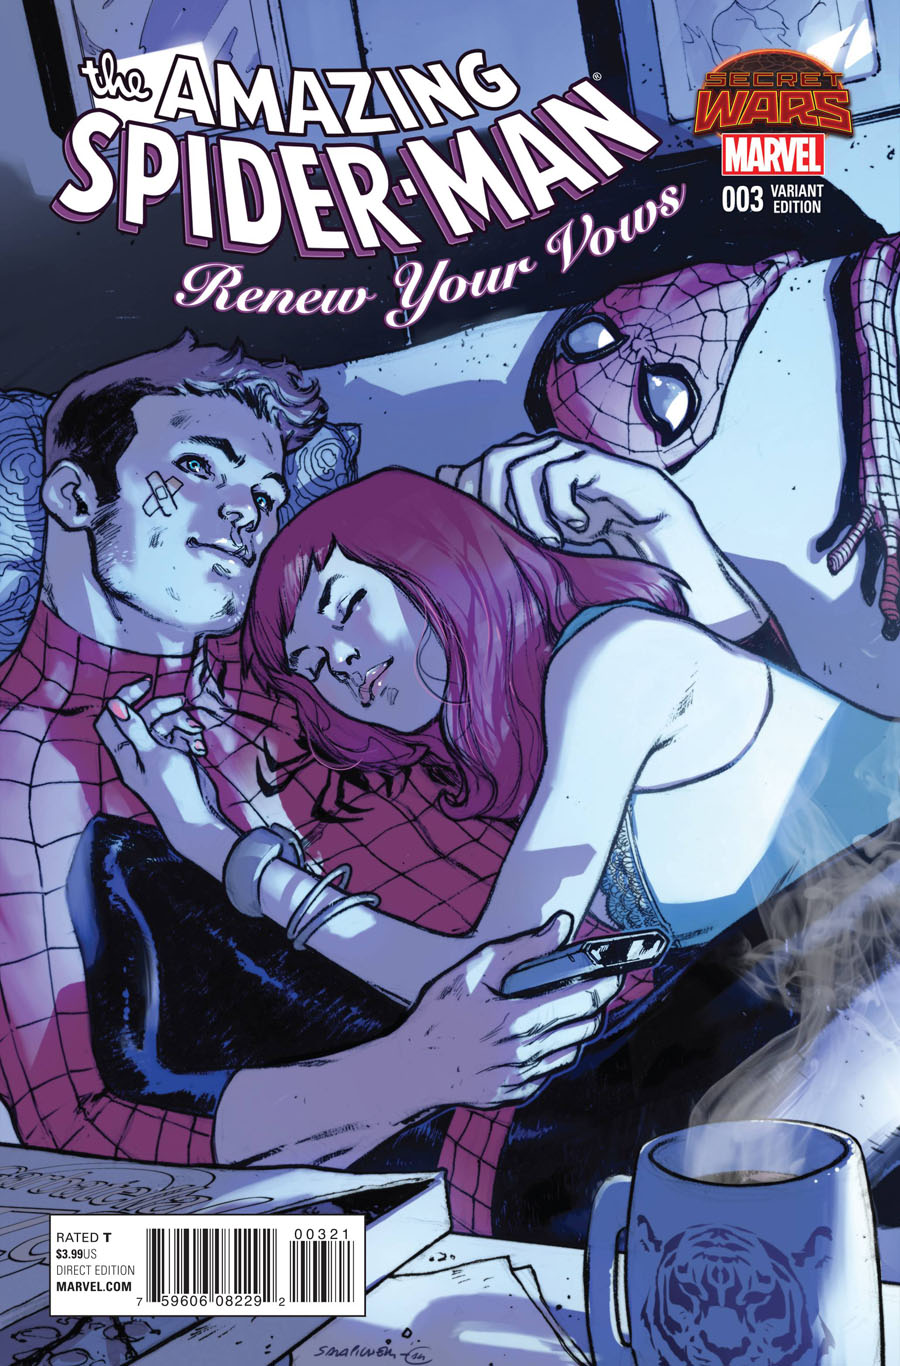 Amazing Spider-Man Renew Your Vows #3 Cover B Incentive Sara Pichelli Variant Cover (Secret Wars Warzones Tie-In)